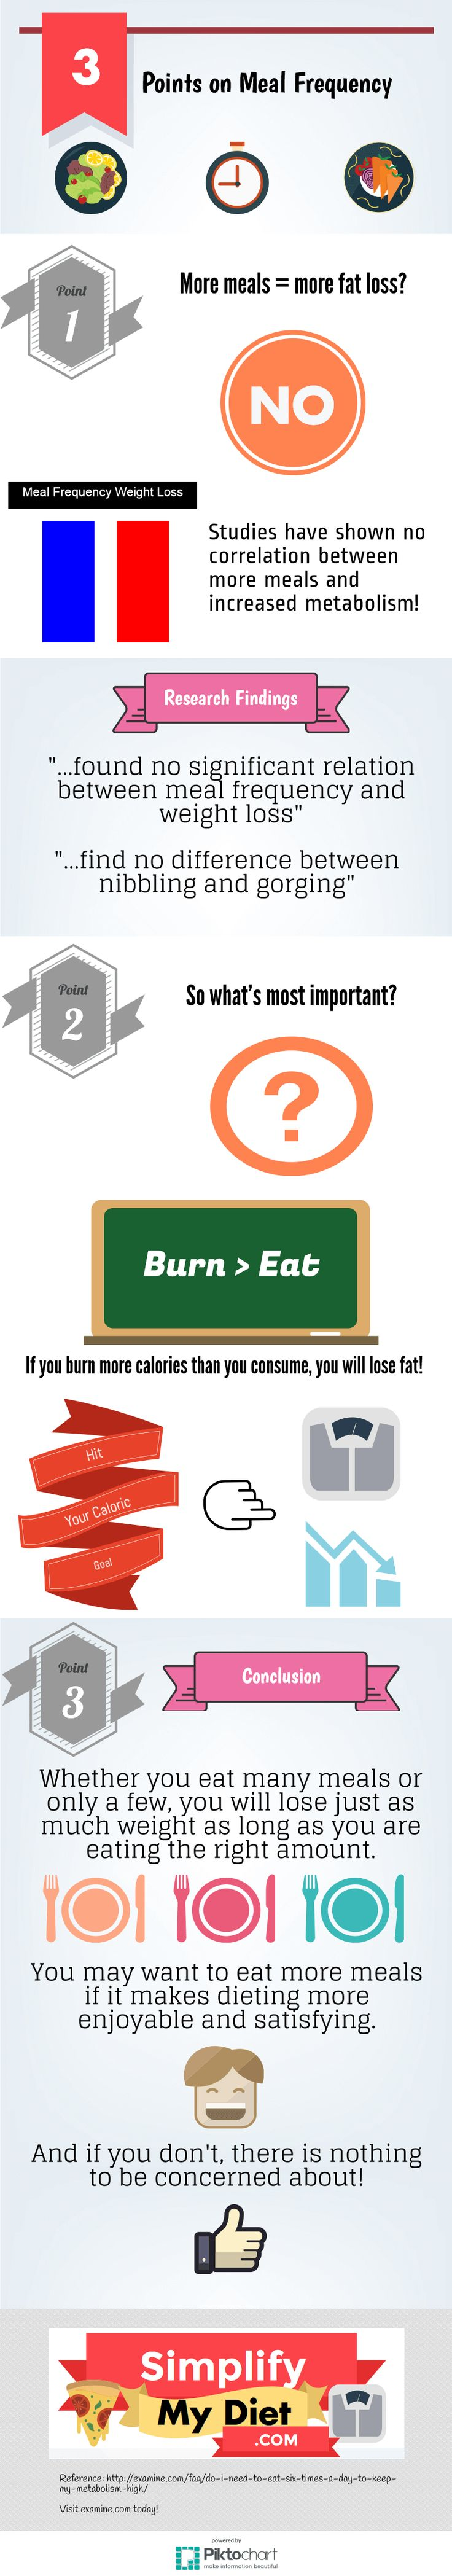 what are the best foods for burning belly fat